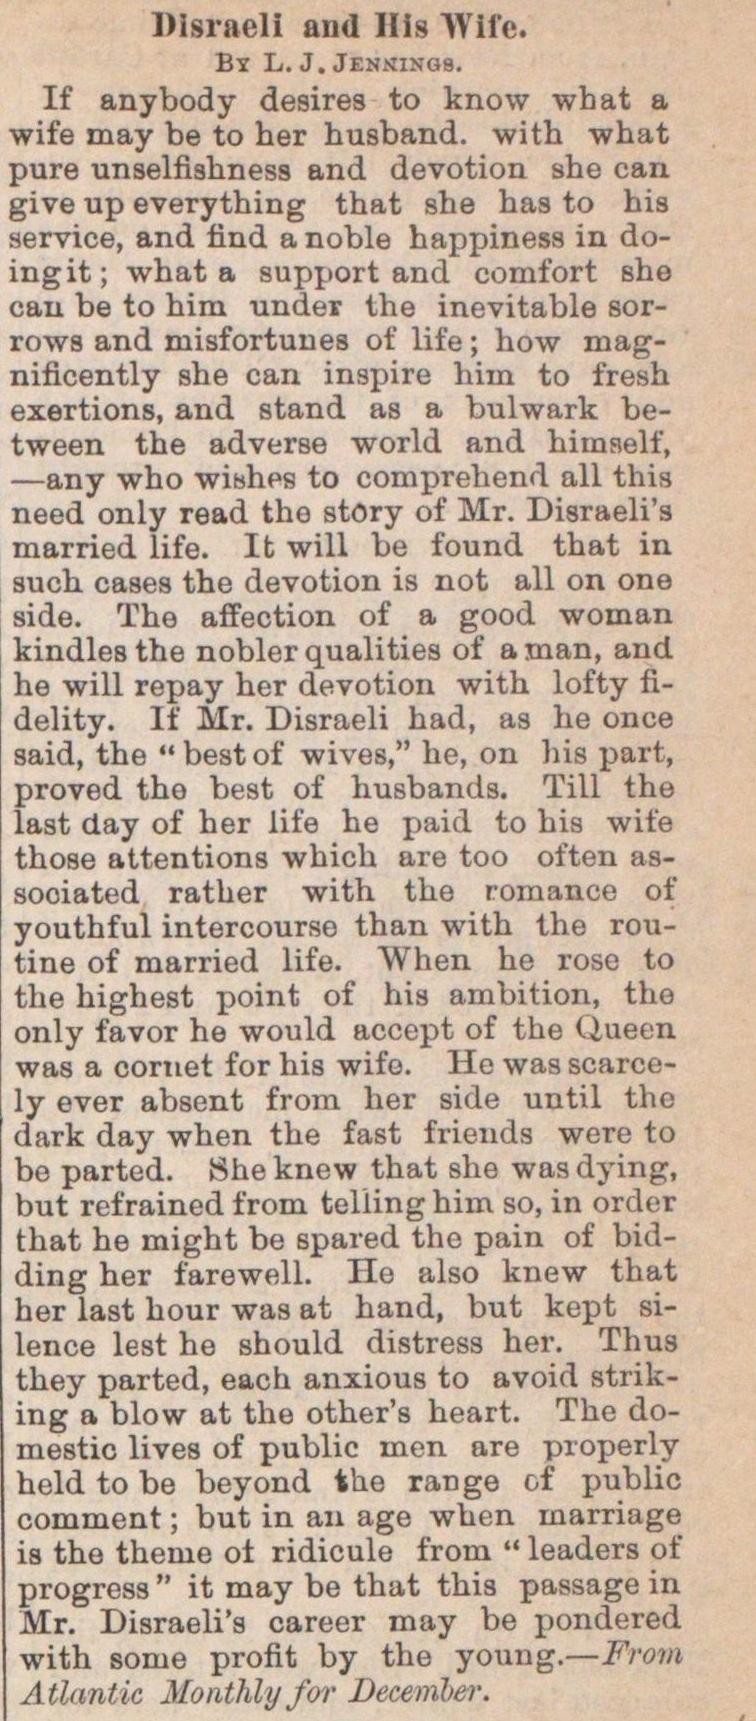 Disraeli And His Wife image